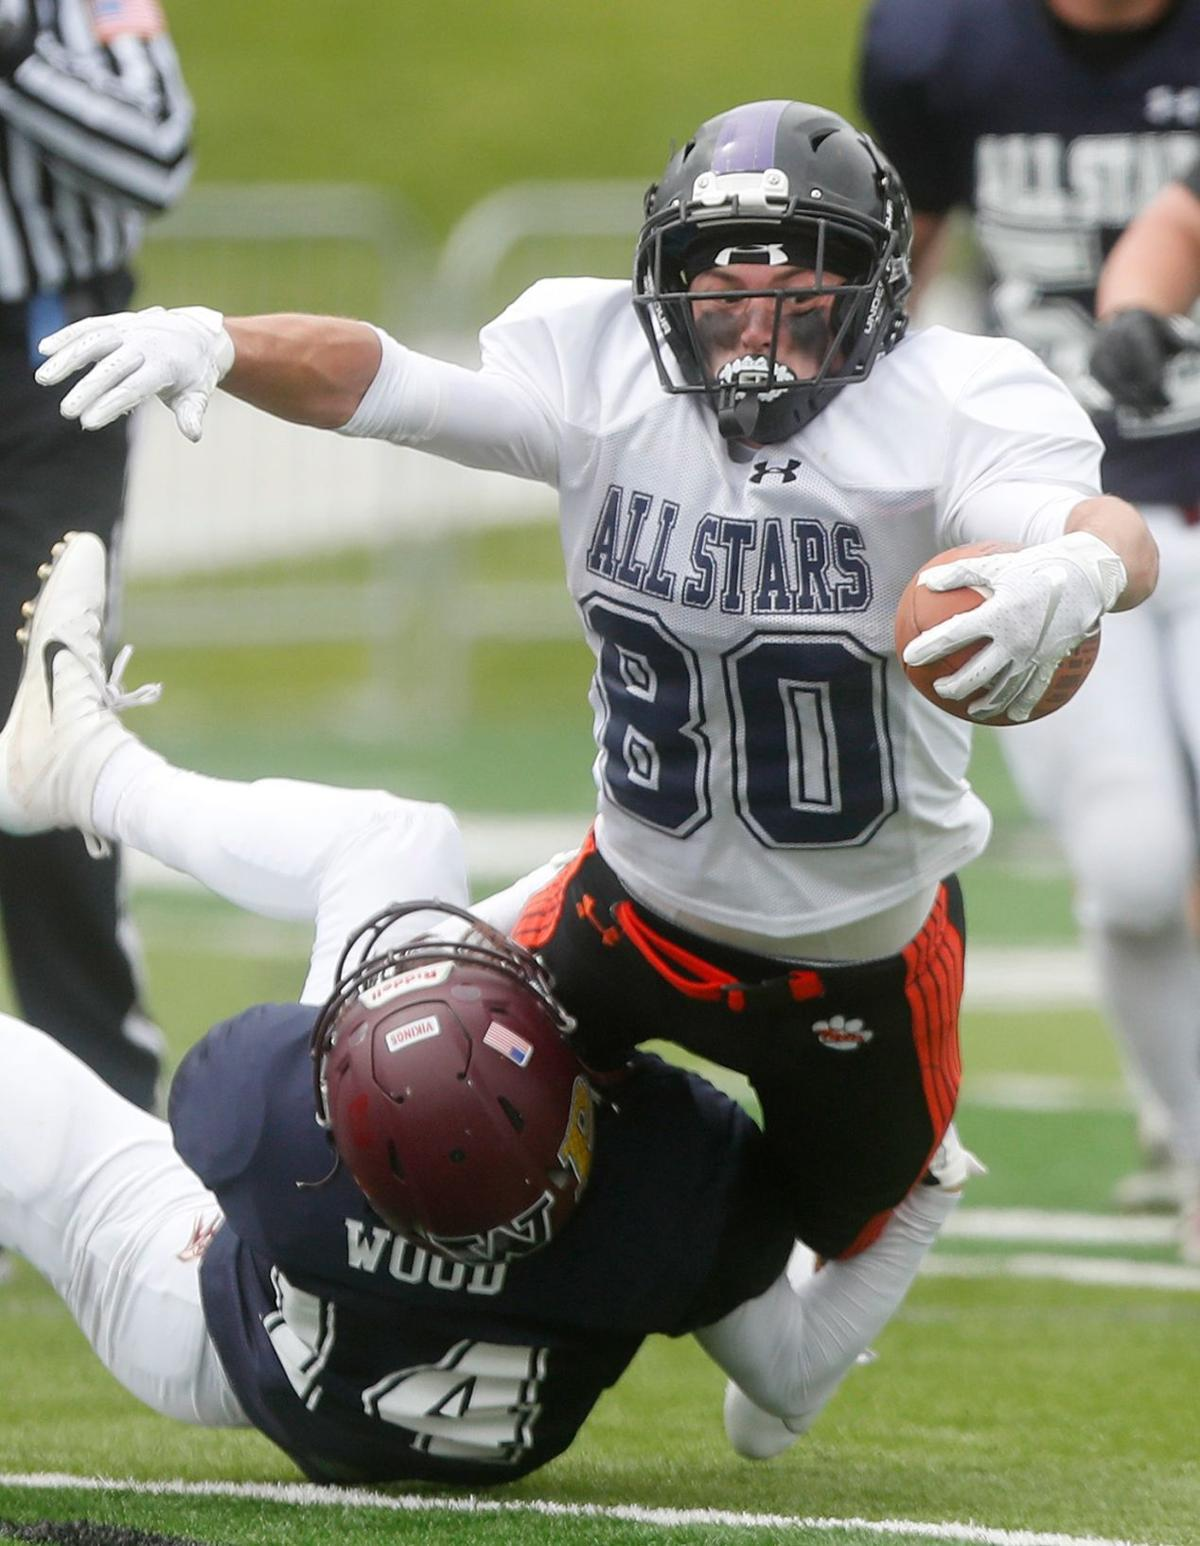 Class B All-Stars Football